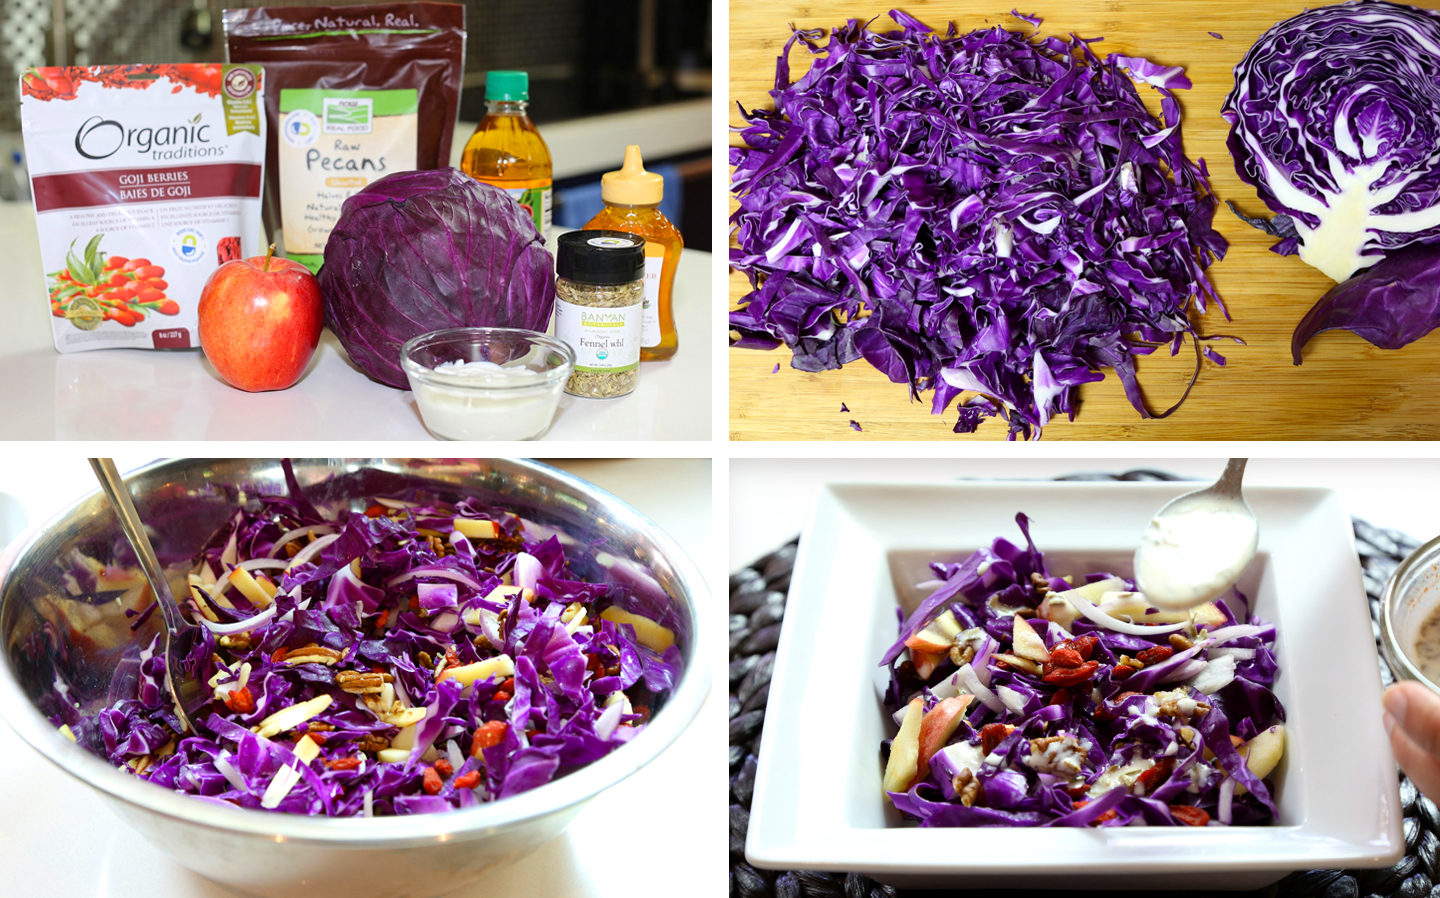 Detox Cabbage Salad